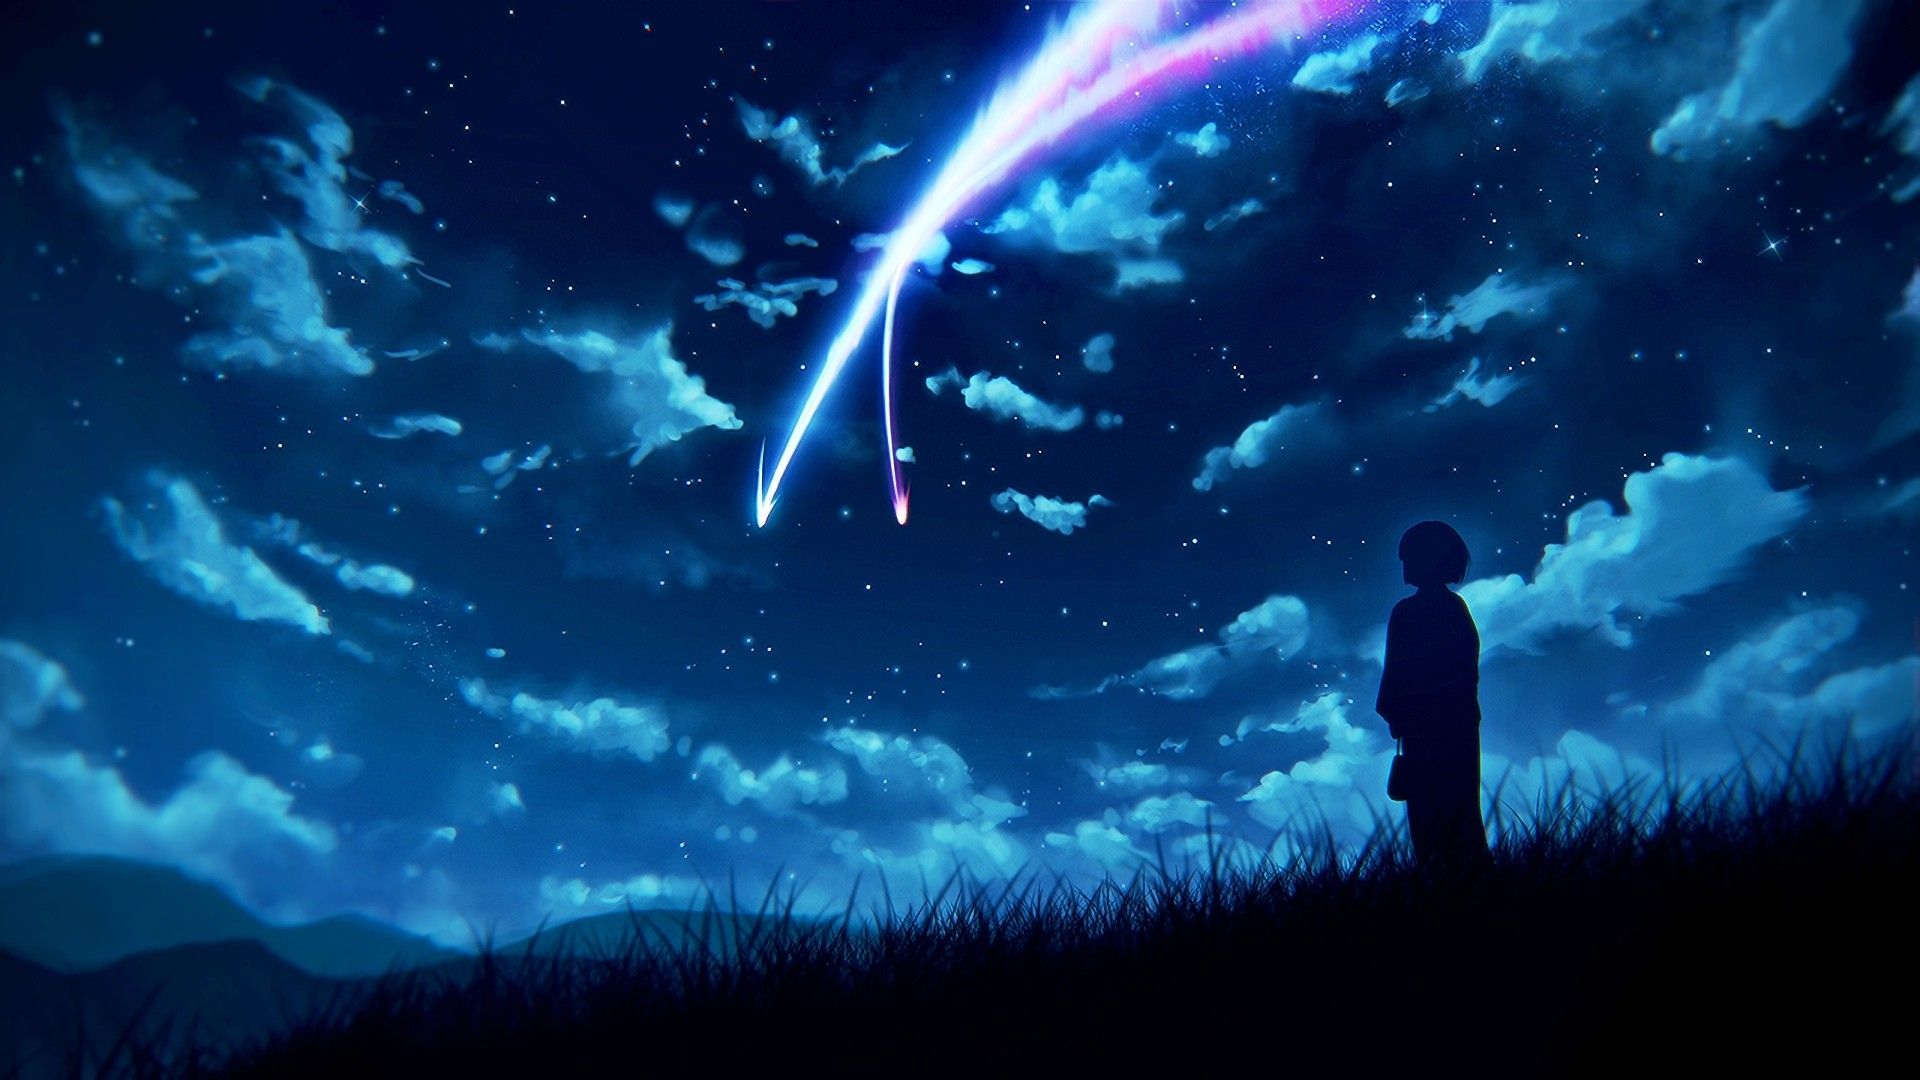 1920x1080 Anime Your Name Mitsuha Miyamizu Kimi No Na Wa Wallpaper Scenery Wallpaper Kimi No Na Wa Wallpaper Anime Scenery